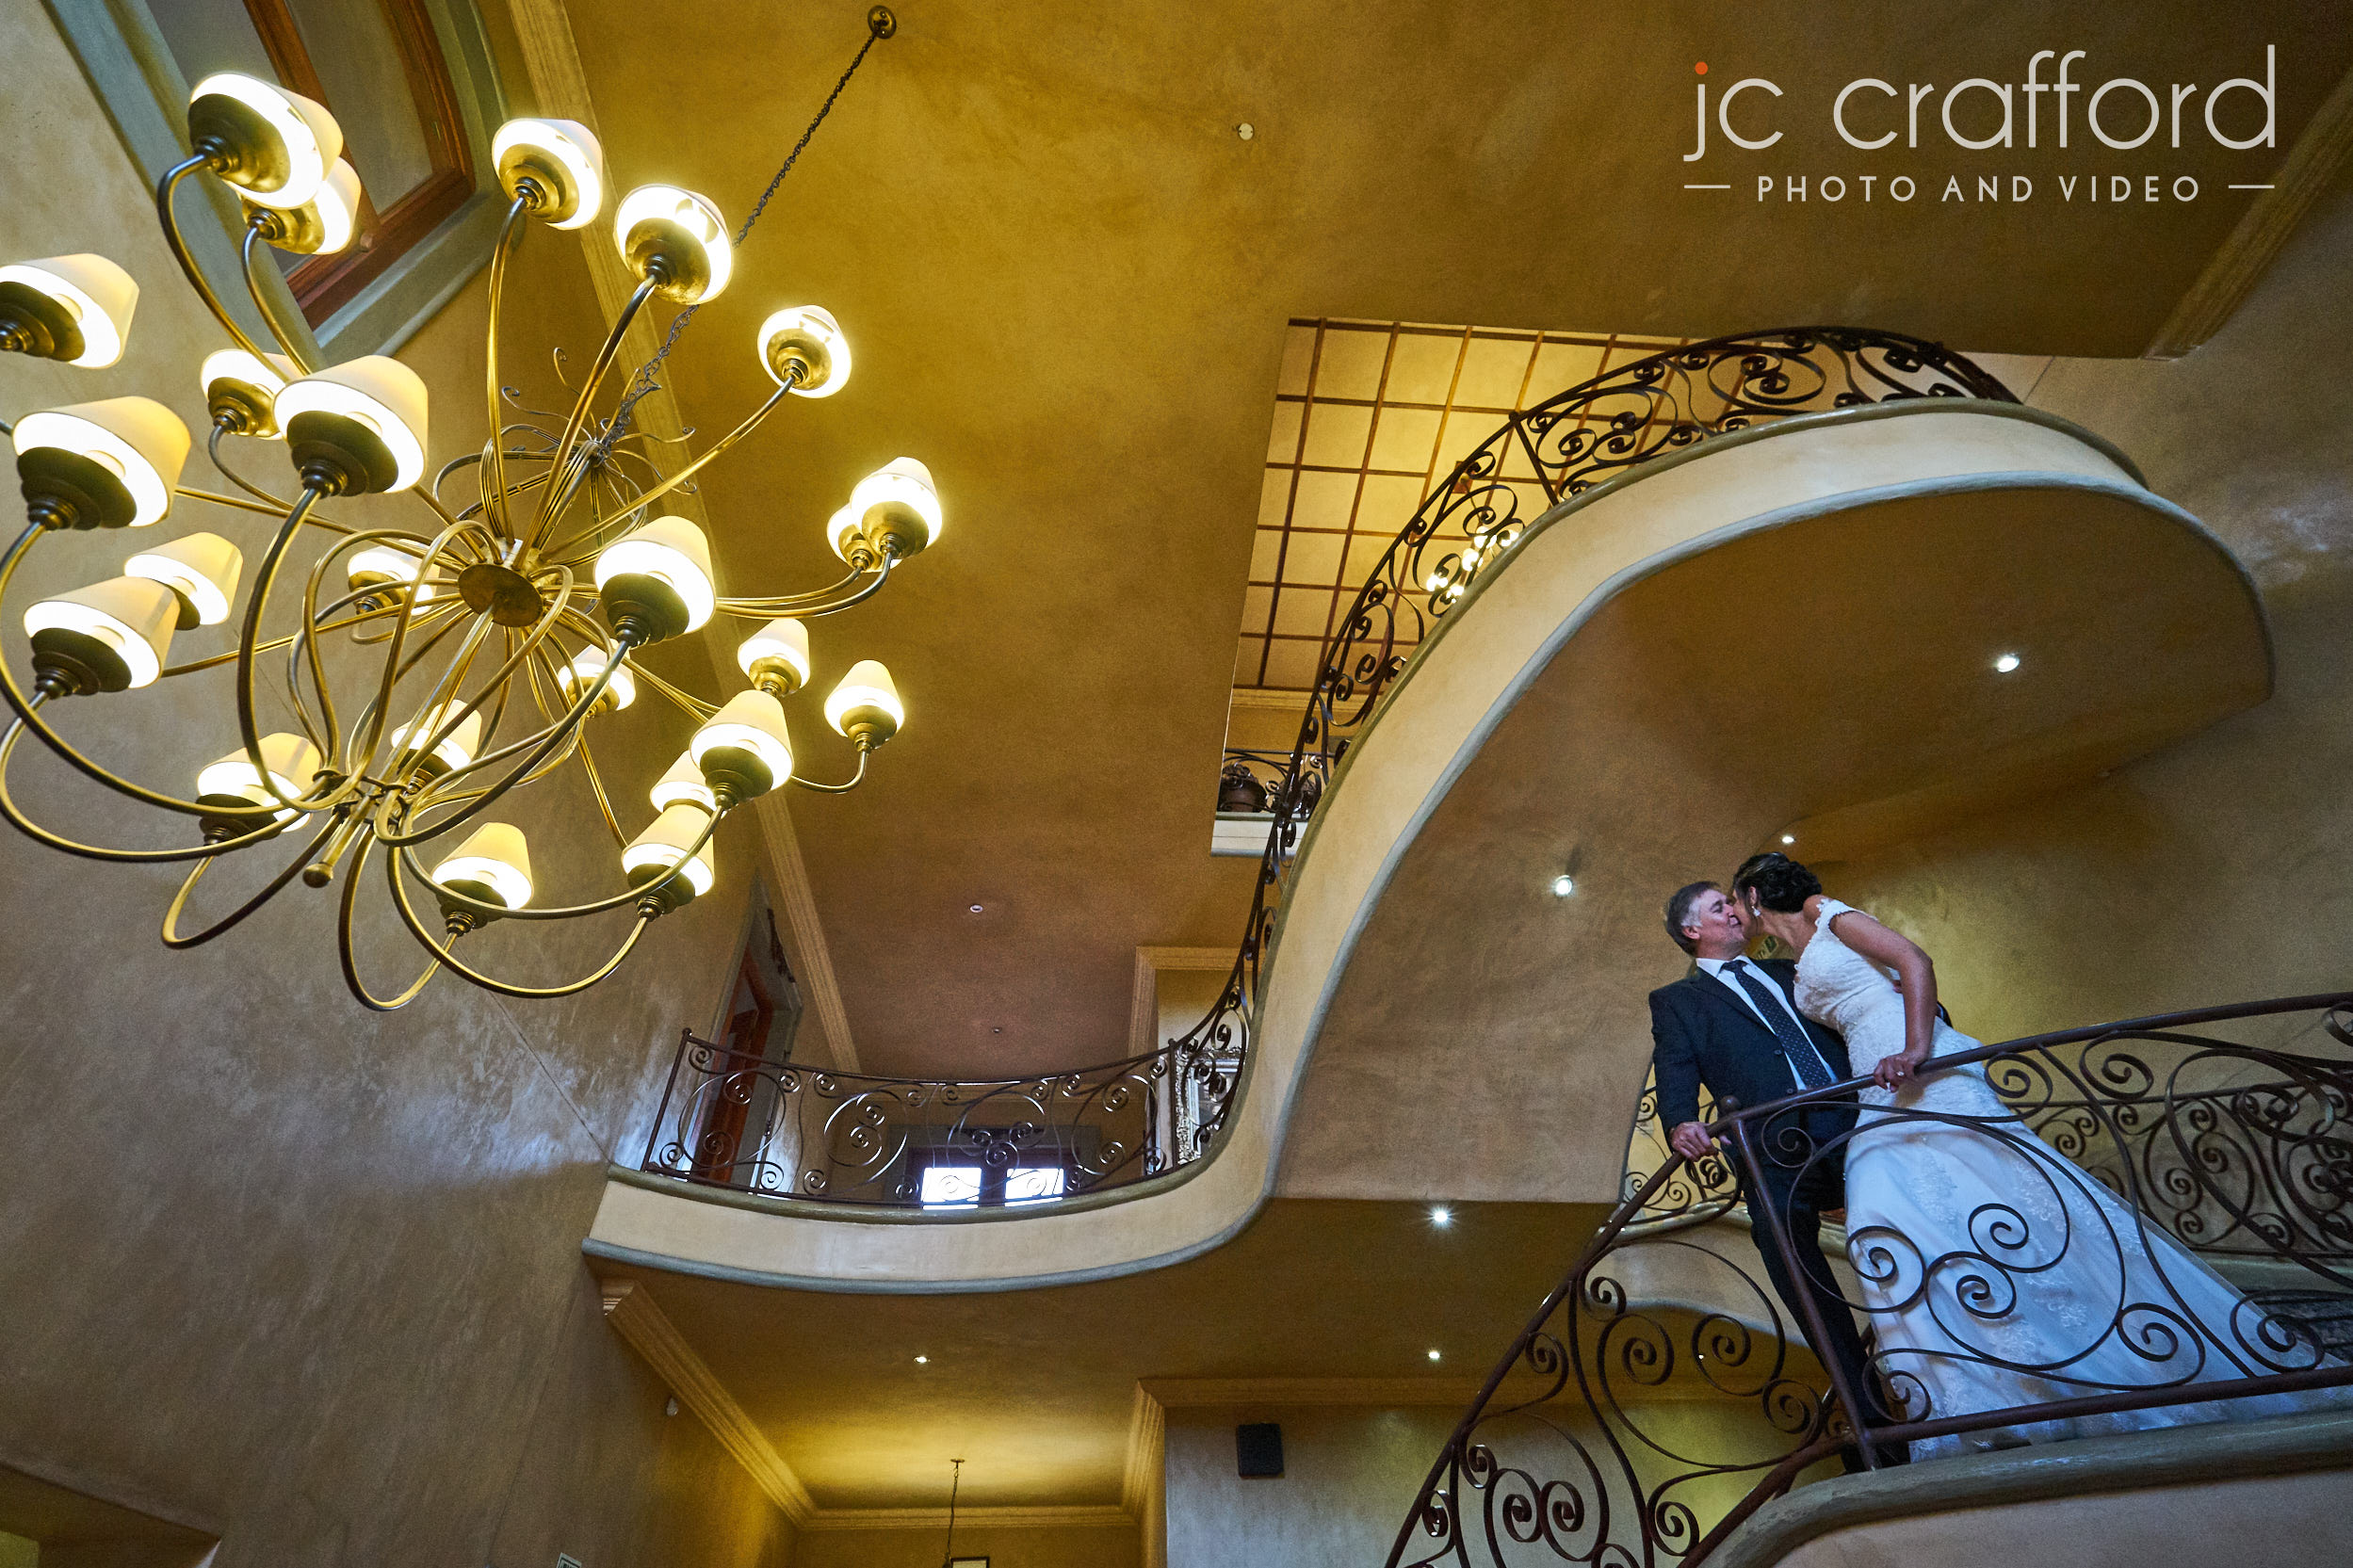 JC Crafford wedding photography at castello di Monte in Pretoria IS